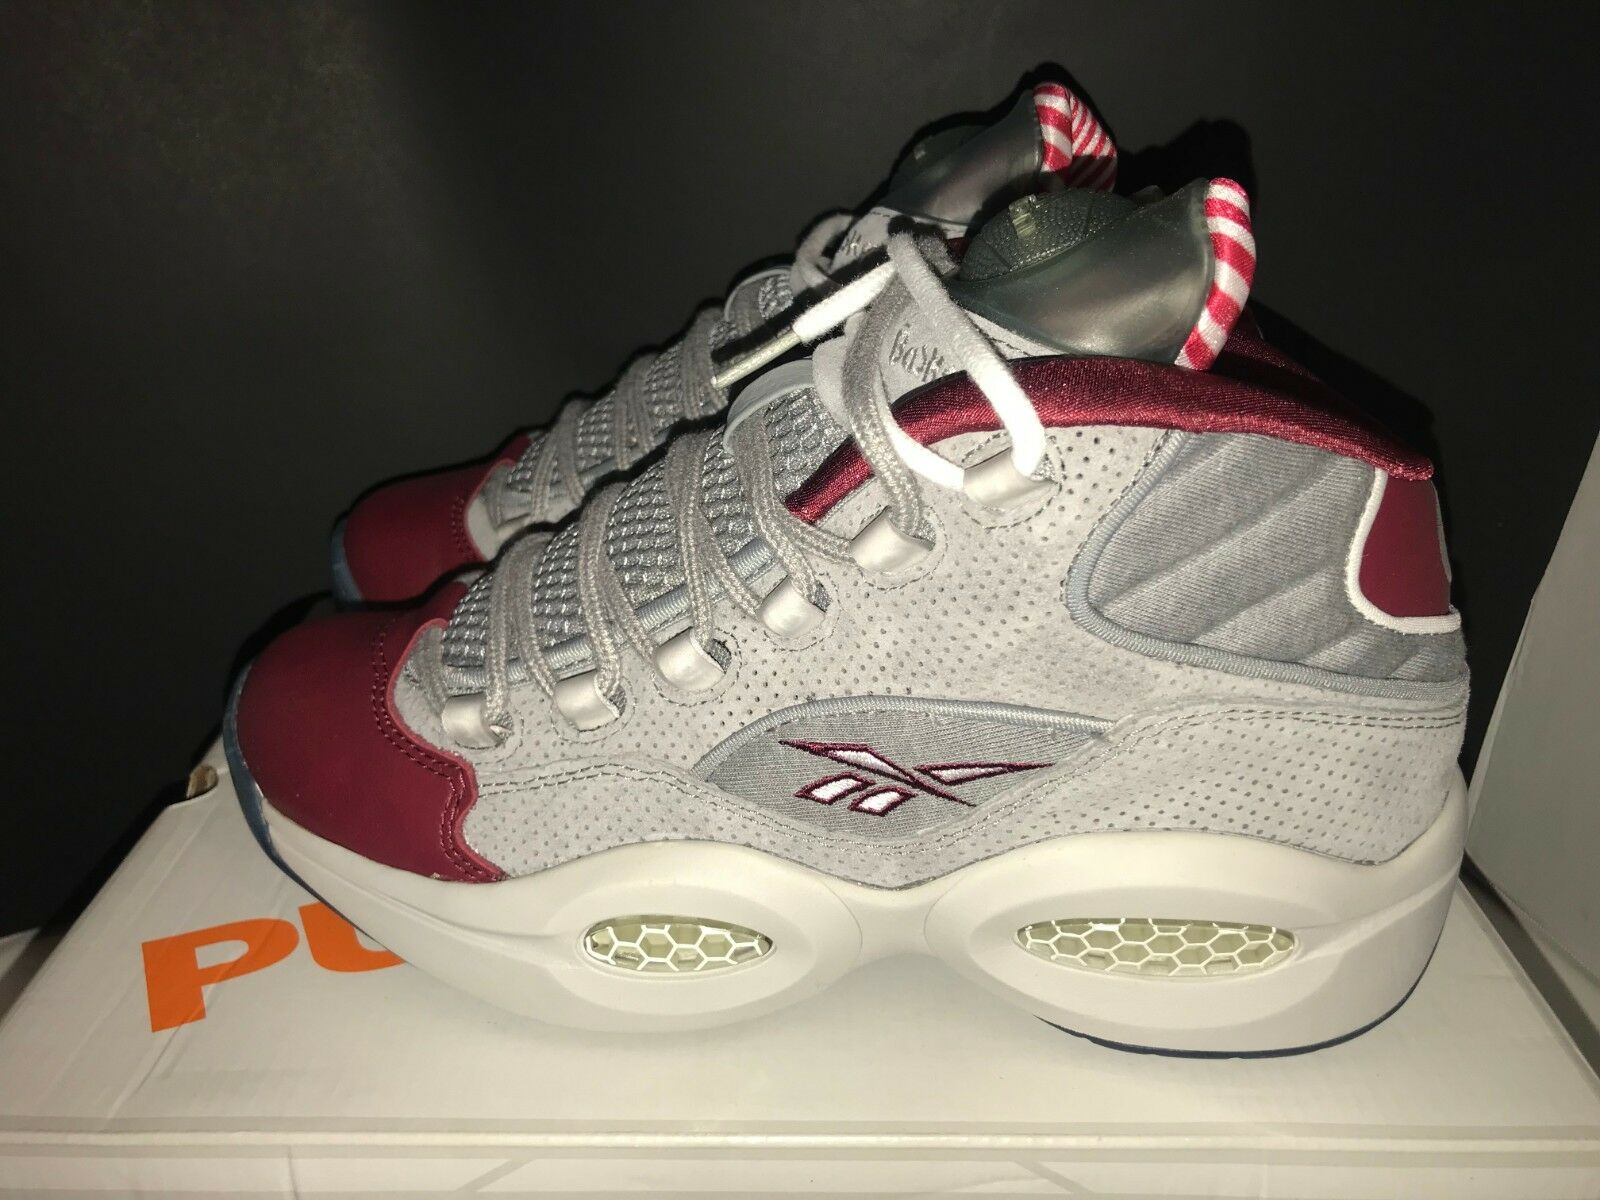 Reebok x Villa Question Mid A Day In Philly Men's Size 8.5 9.5 Rare